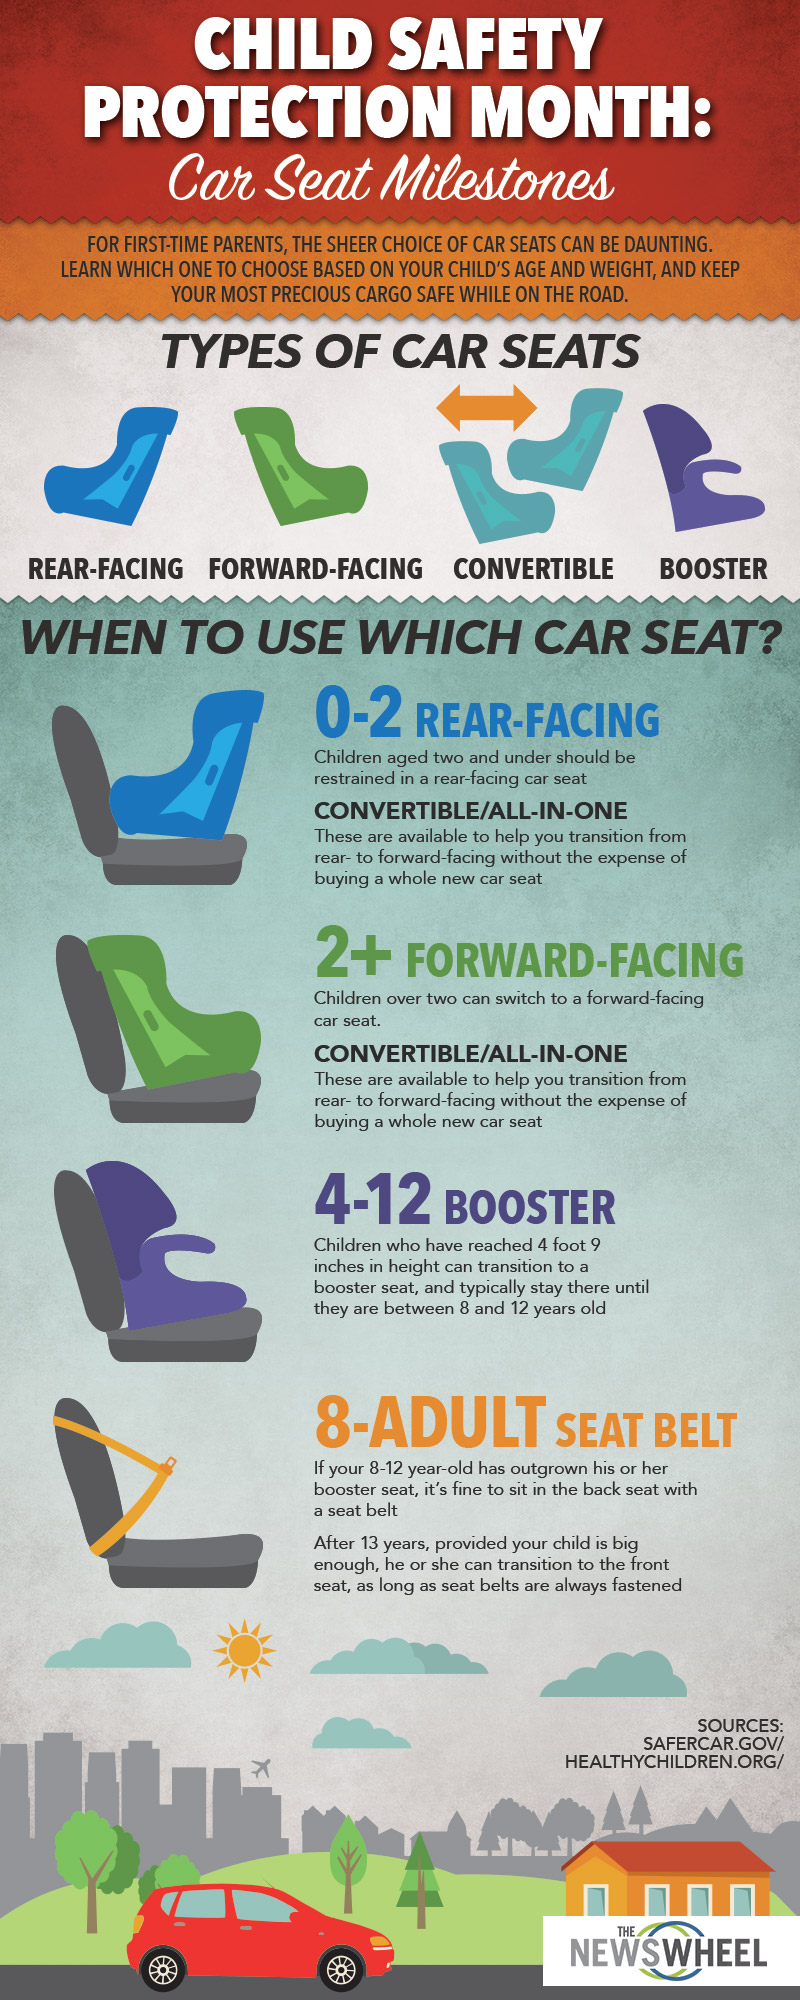 Child Safety Protection Month Car Seat Milestones Infographic